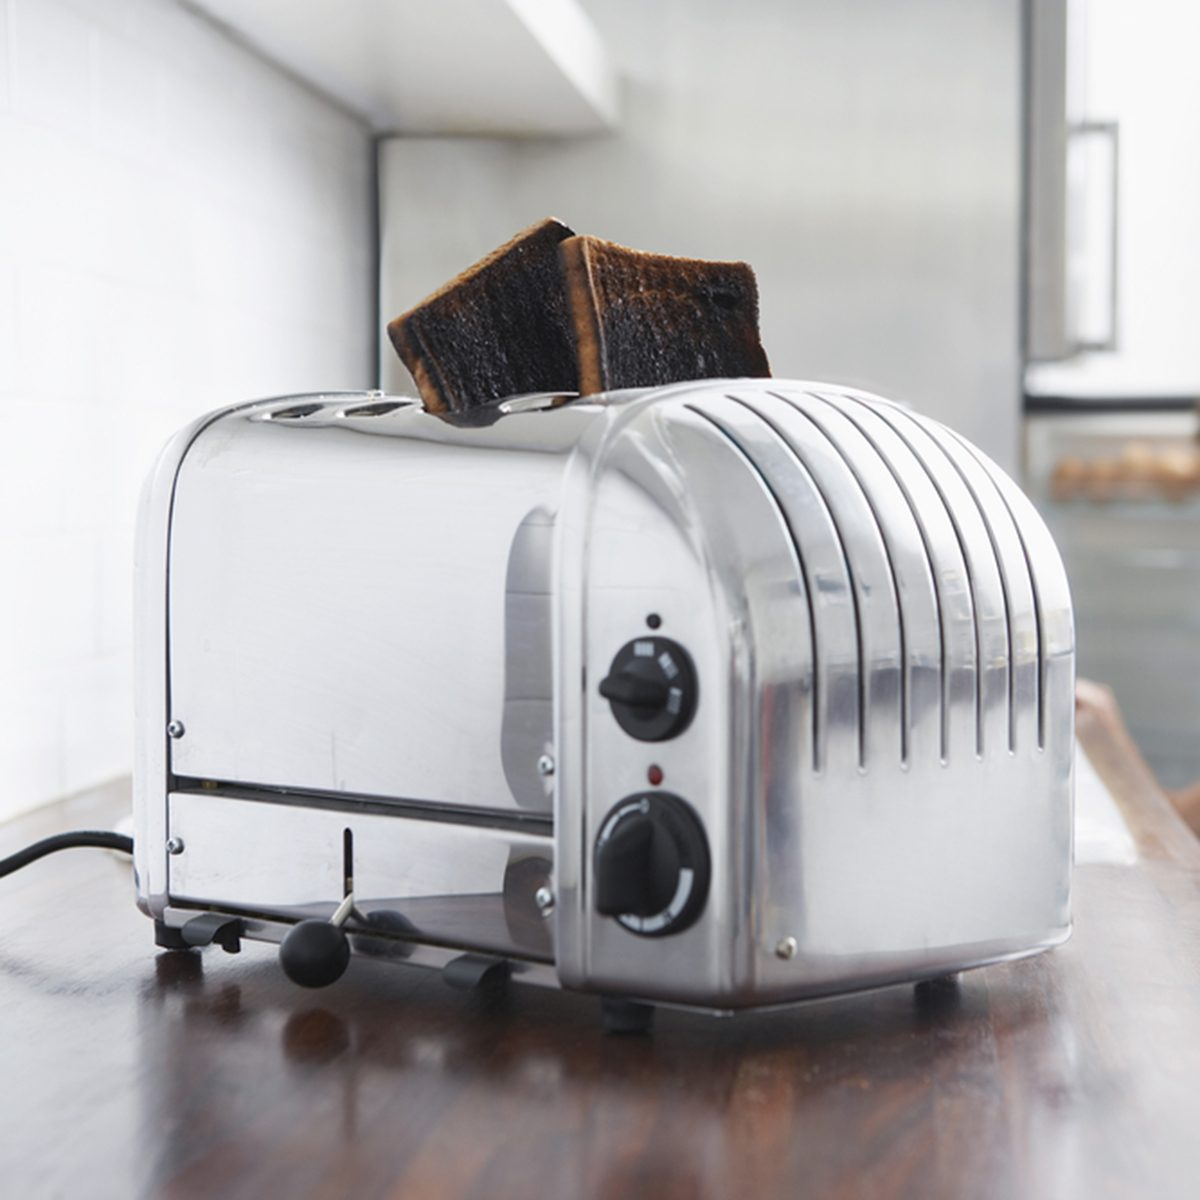 Burned toasts in toaster on kitchen counter with woman in background